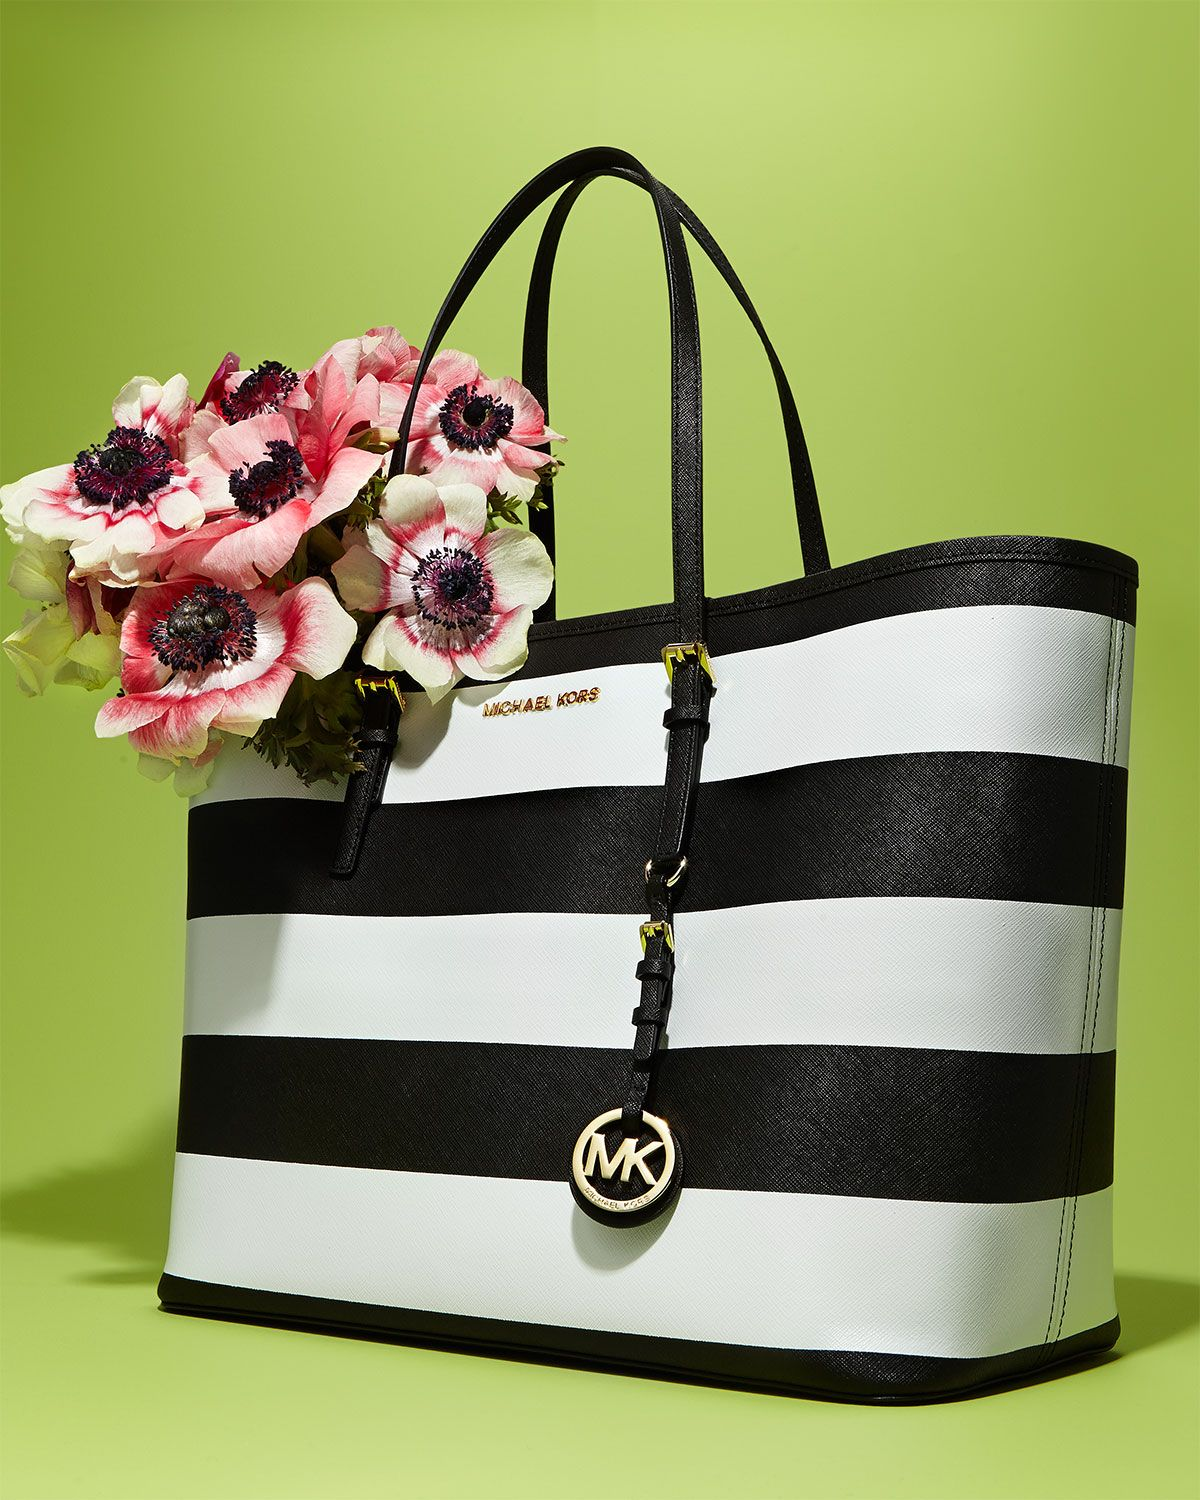 KorsZapatos Striped Y Michael Black Accesorios White By Tote And SzGUqMVp